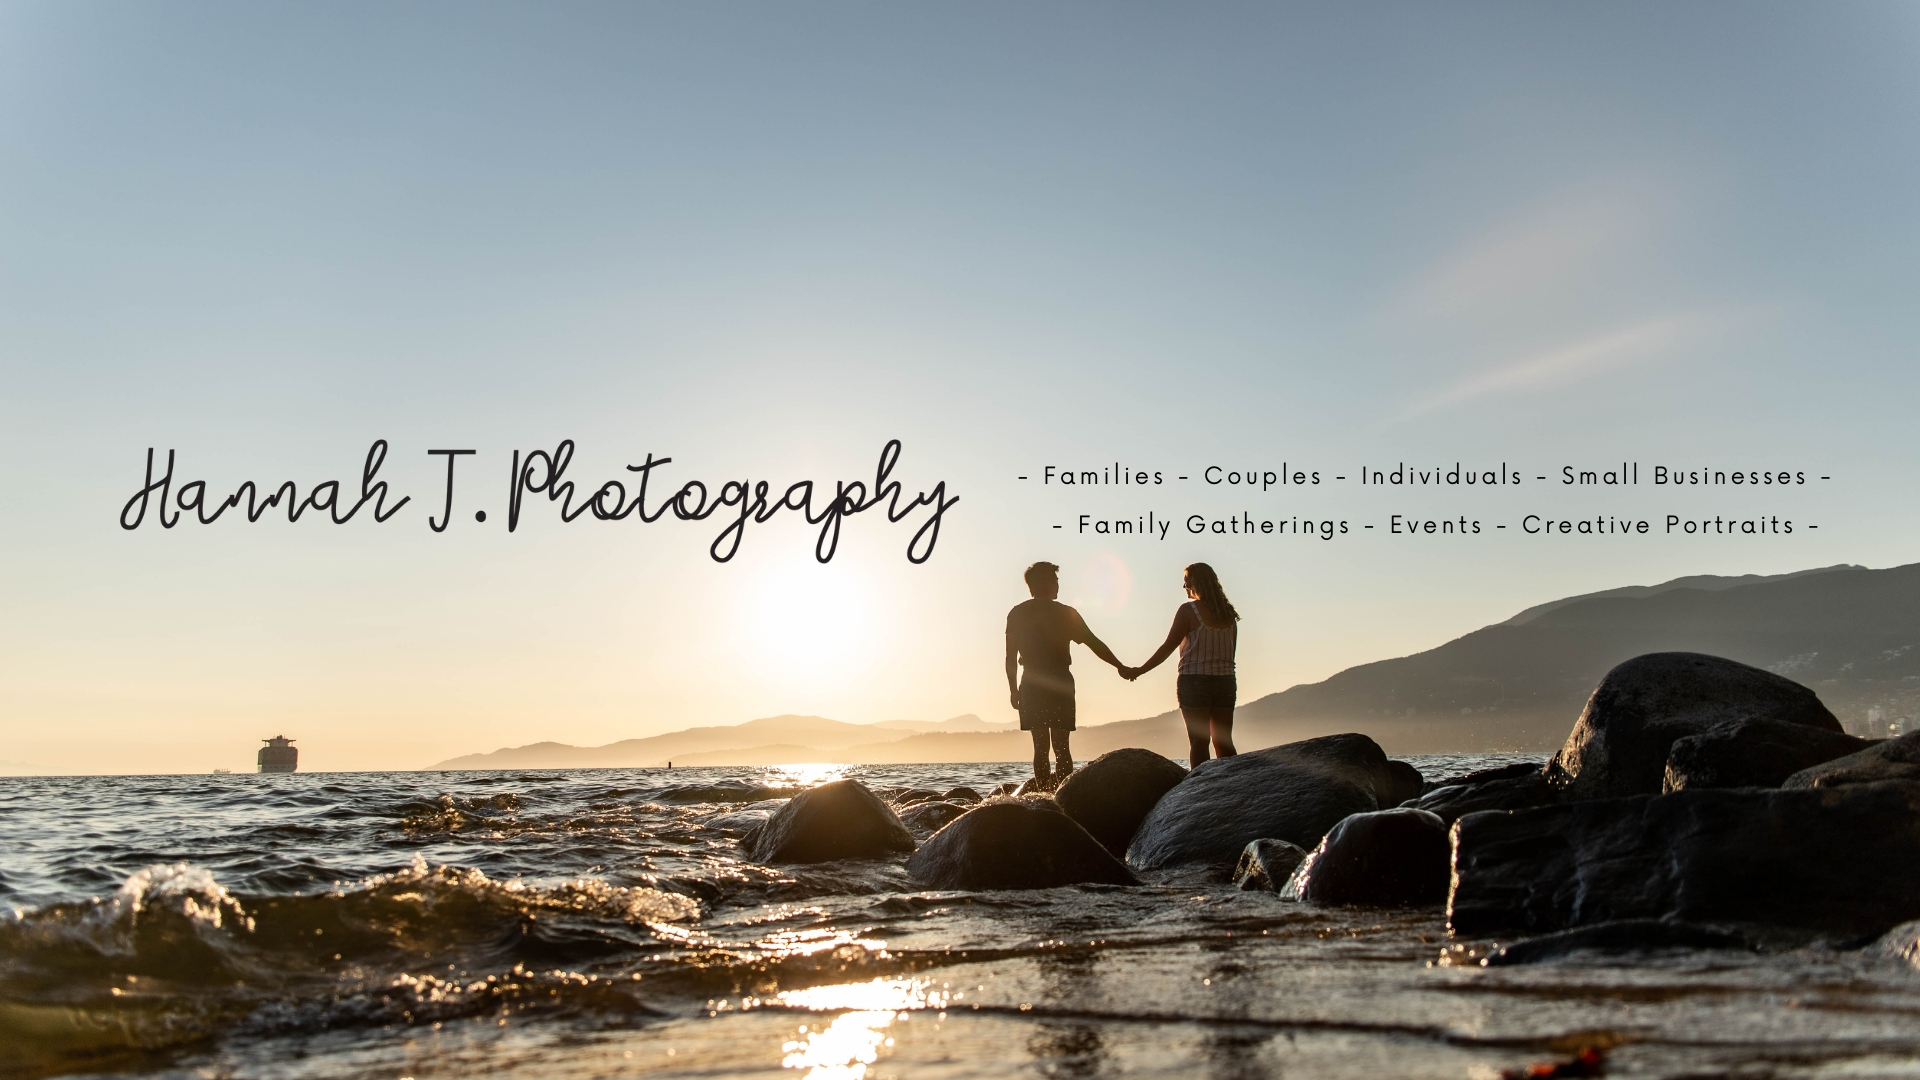 Hannah T. Photography Wedding & Engagement Photography Cover Image